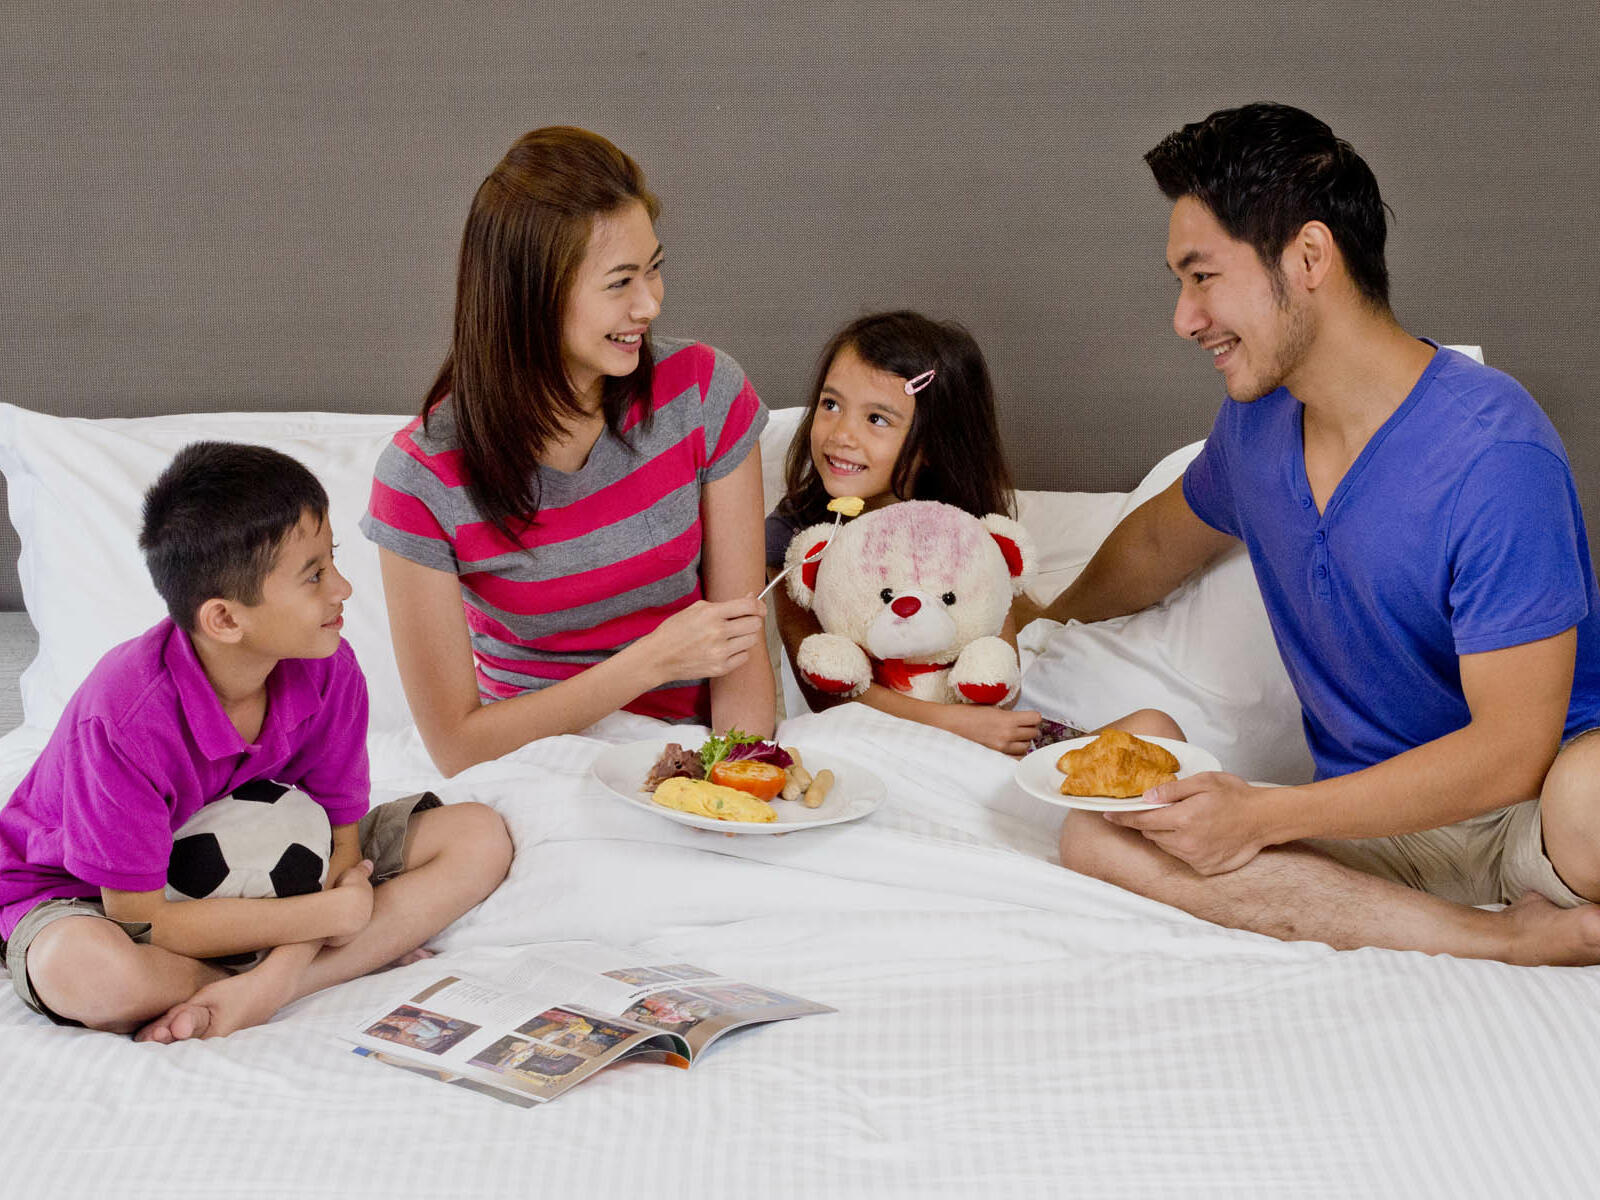 A family enjoying food and company on the bed (Room service)